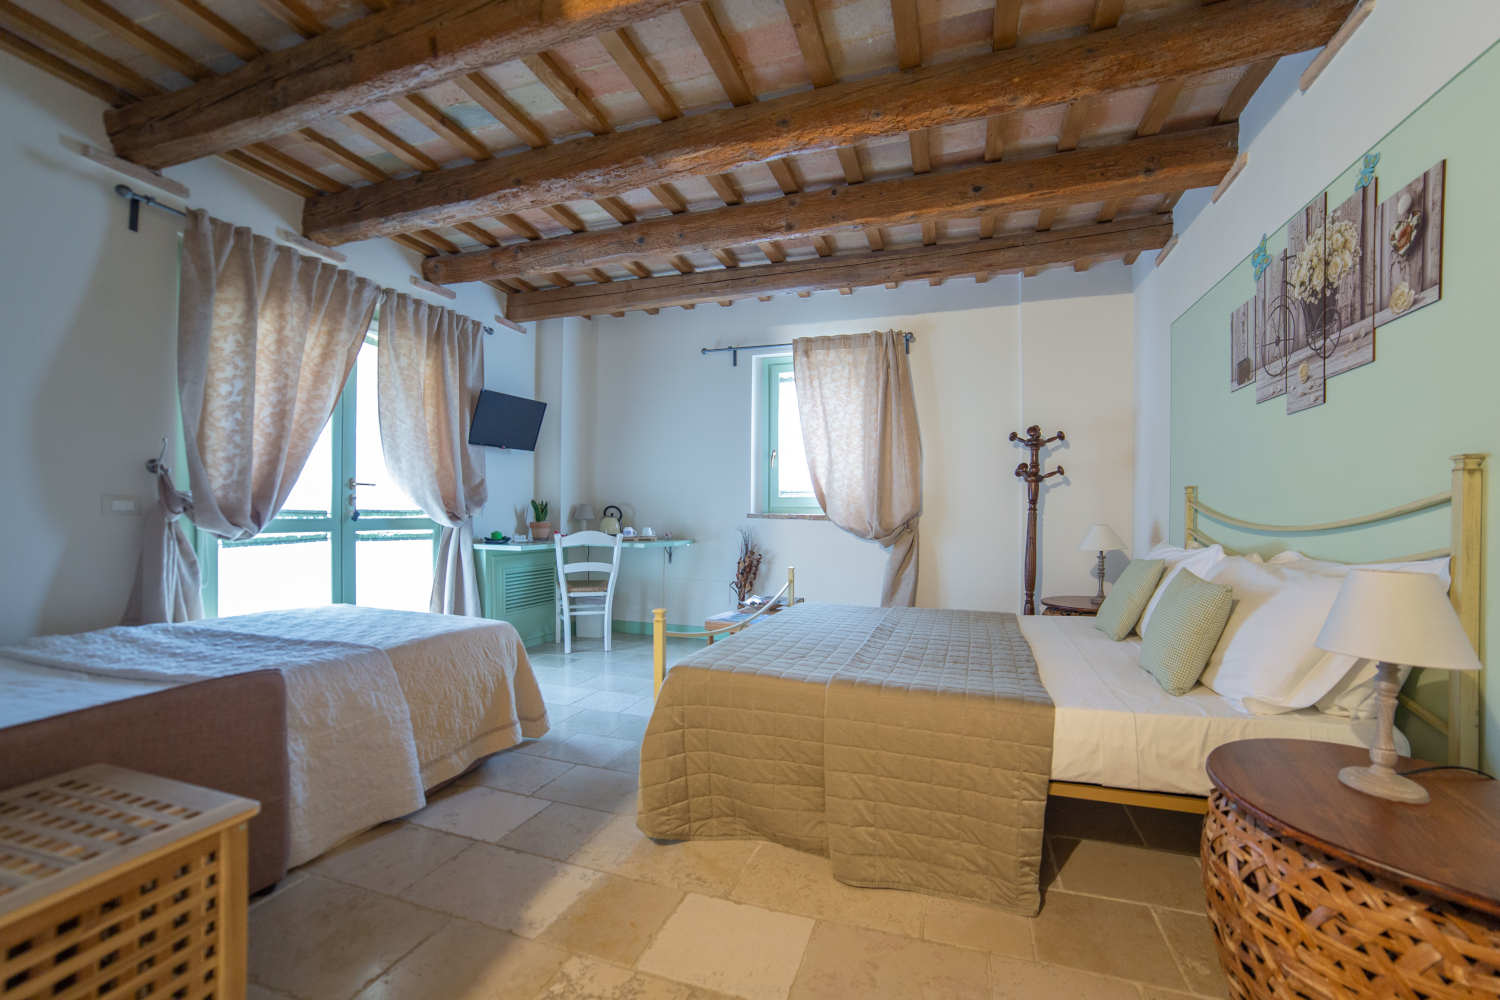 Bed And Breakfast A Jesi Ancona Marche Agriturismo Country